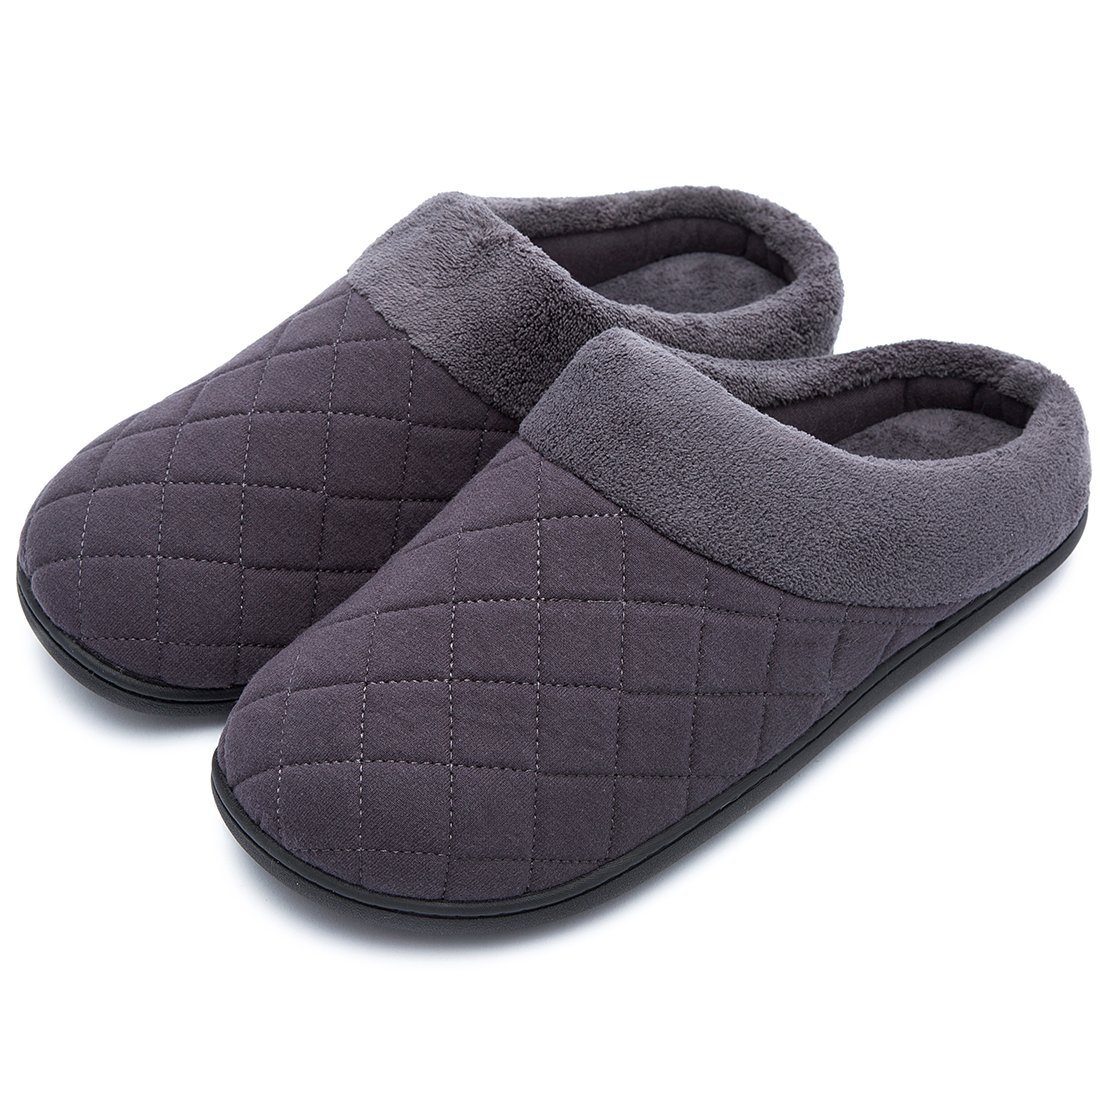 Men's Comfort Quilted Memory Foam Fleece Lining House Slippers Slip On Clog House Shoes (Large / 11-12 D(M) US, Dark Gray)